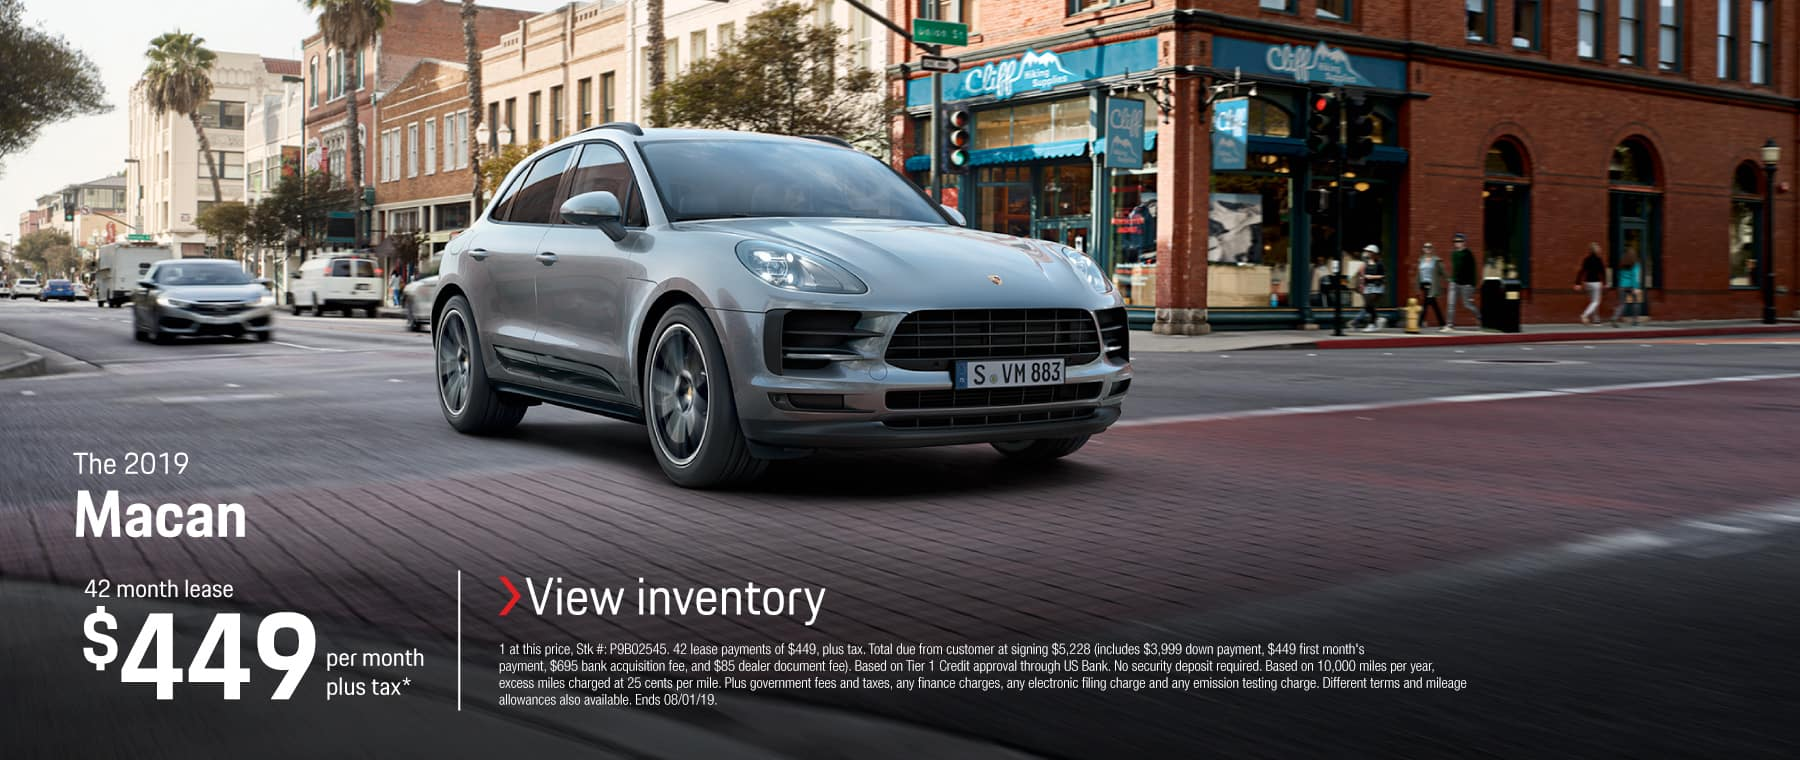 2019 Macan Lease 449 42 months